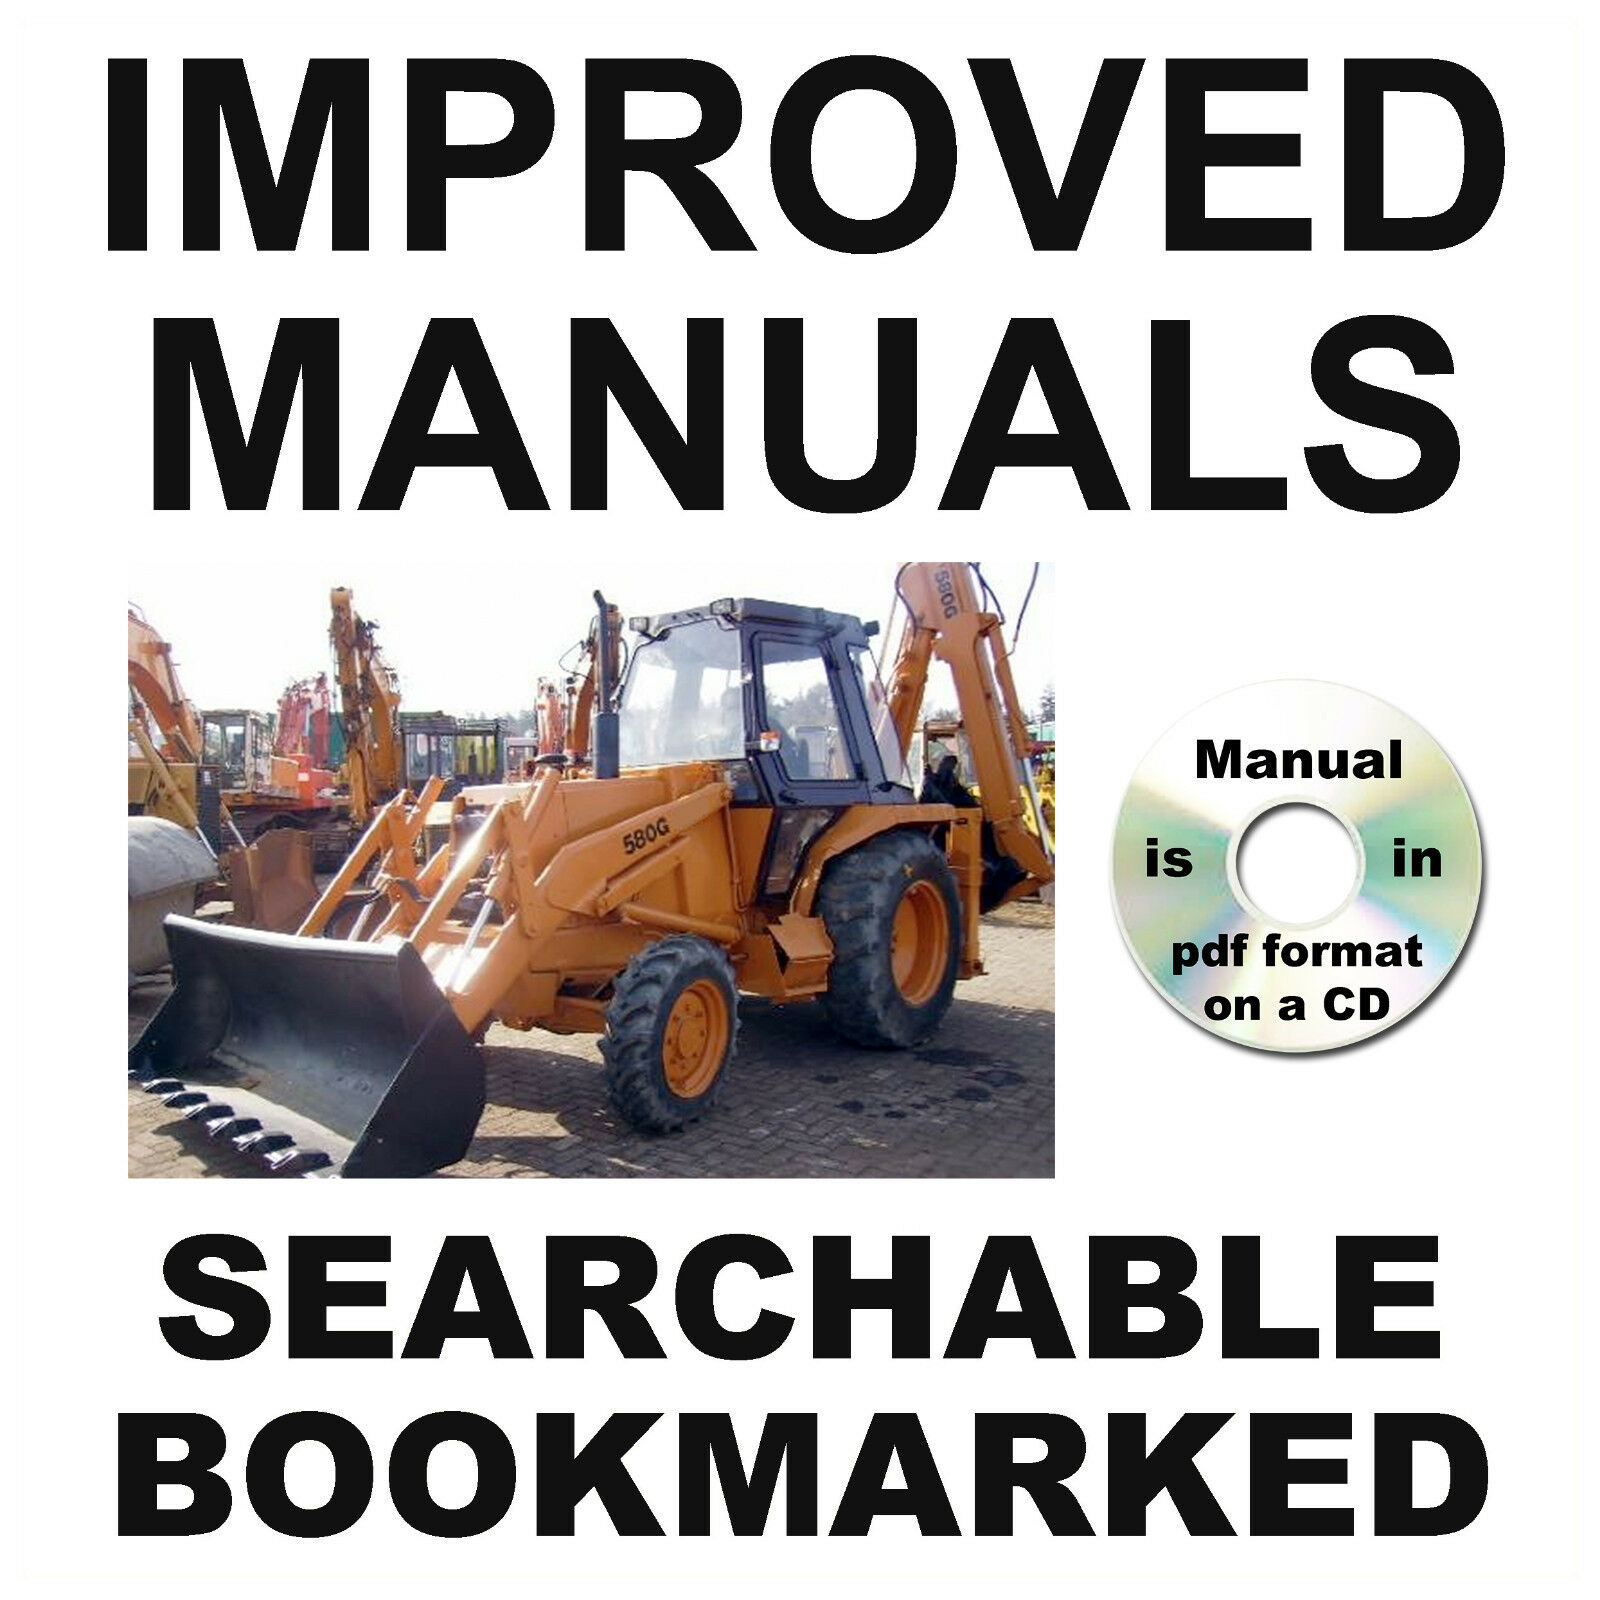 Parts Manual For Case 580l Ebook Tractor 480f Wiring Diagram Service Repair Searchable Cd Array 580g 580 G Ck Loader Backhoe Illustrated Catalog Improved Rh Picclick Com